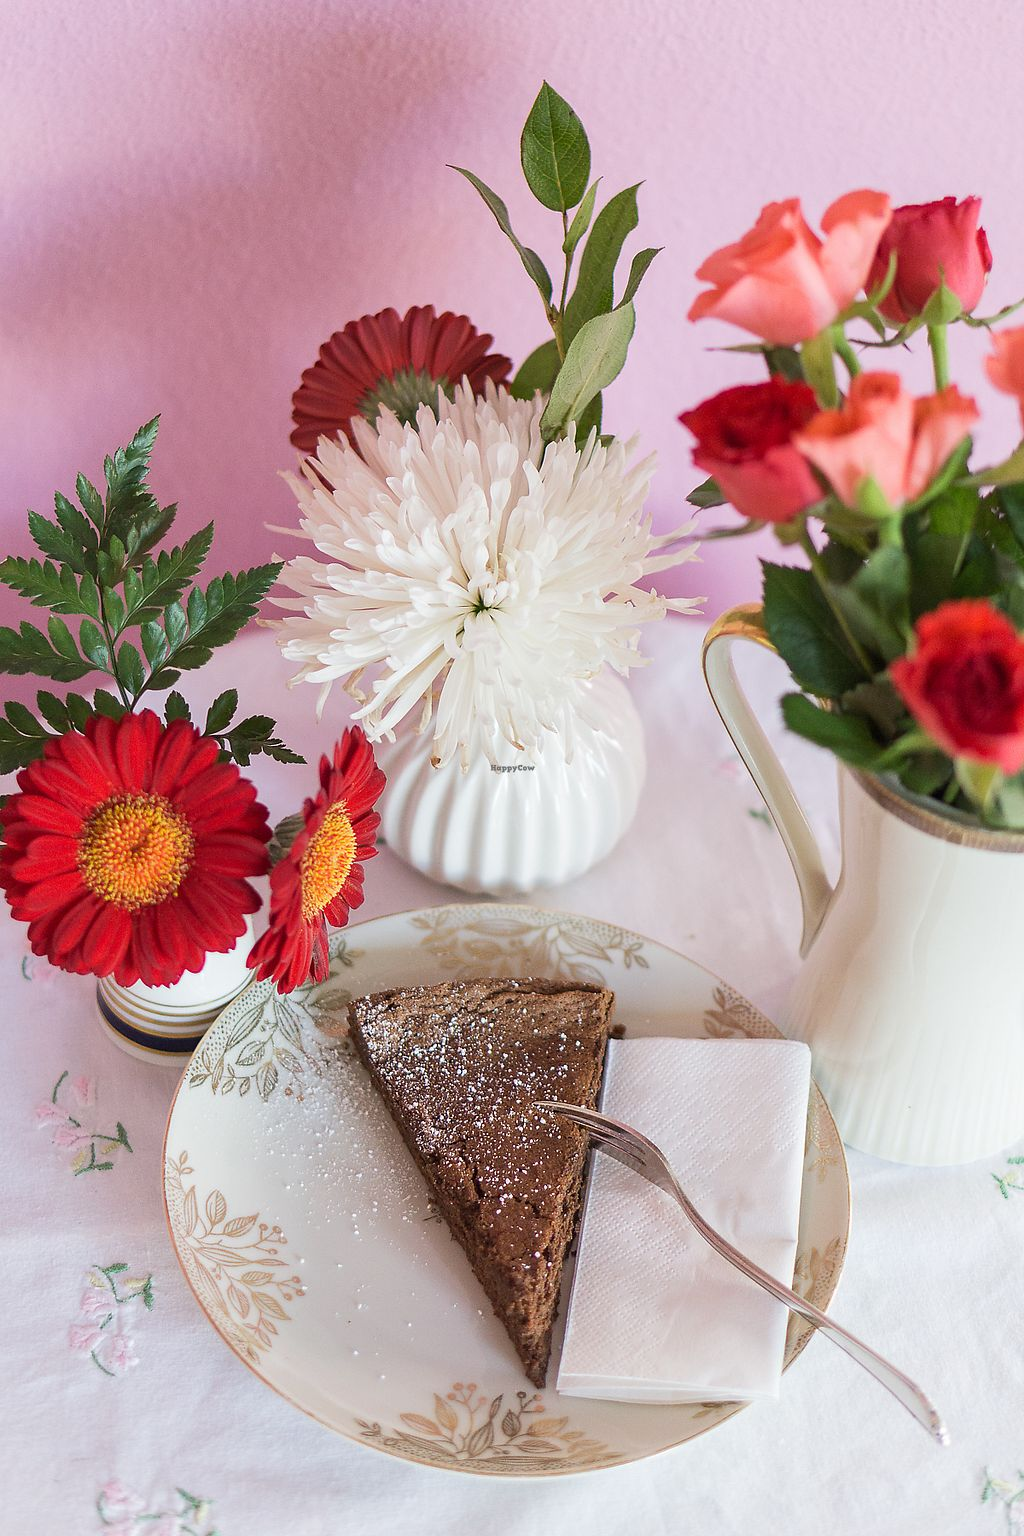 """Photo of Radieschen  by <a href=""""/members/profile/piakipanto"""">piakipanto</a> <br/>French choclate cake (vegetarian, without flour) <br/> October 19, 2017  - <a href='/contact/abuse/image/103140/316549'>Report</a>"""